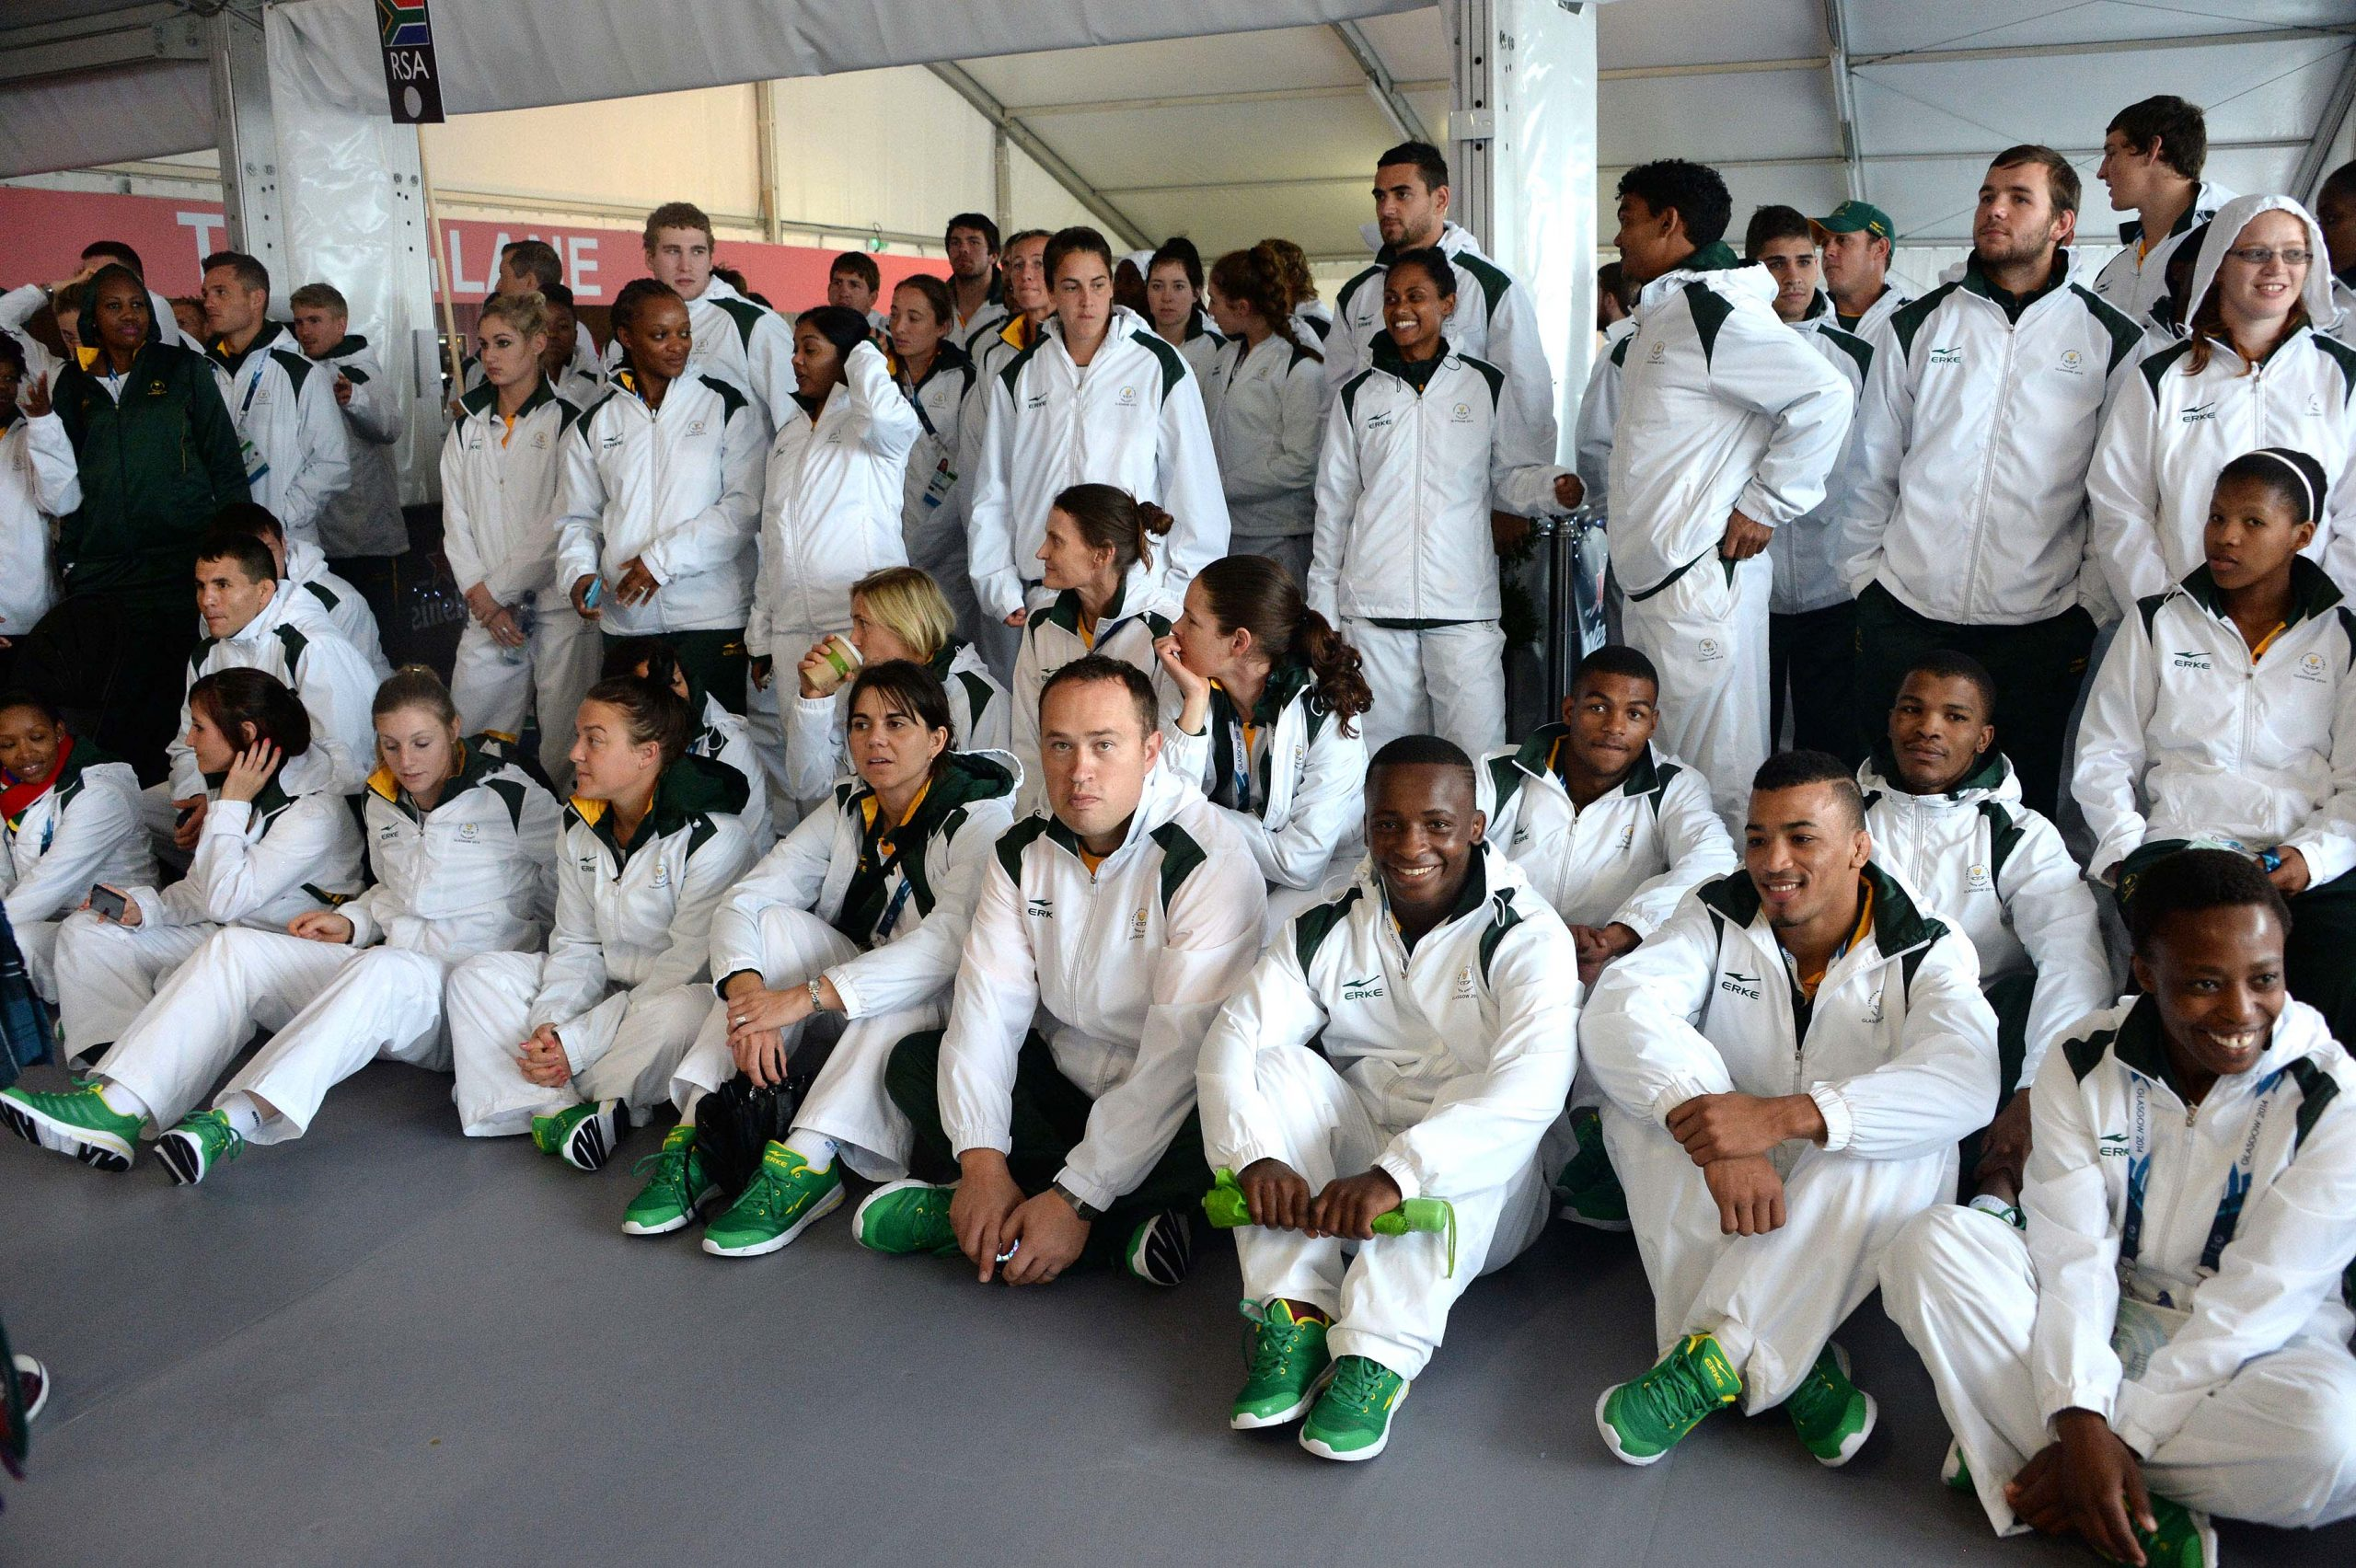 Team SA welcomed at Games flag-raising ceremony